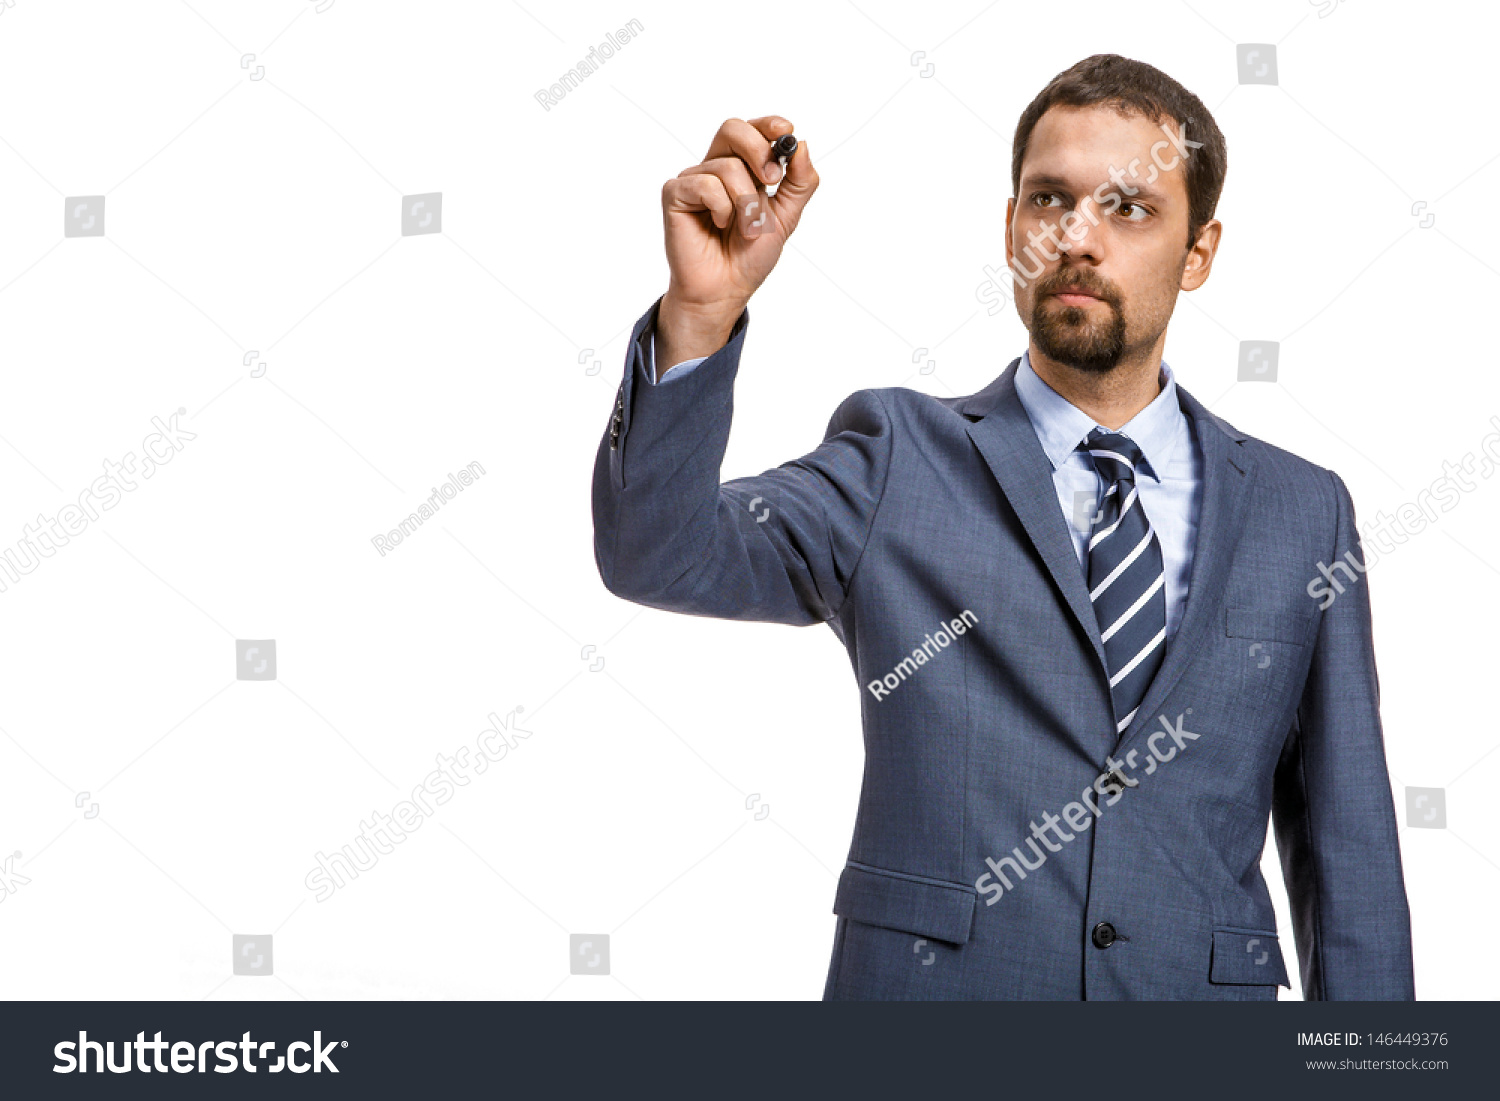 Shrewd Entrepreneur Describes ... -/ Attractive Man In An Expensive Suit Is Going To Write - Isolated On White Background Stock Photo 146449376 ...